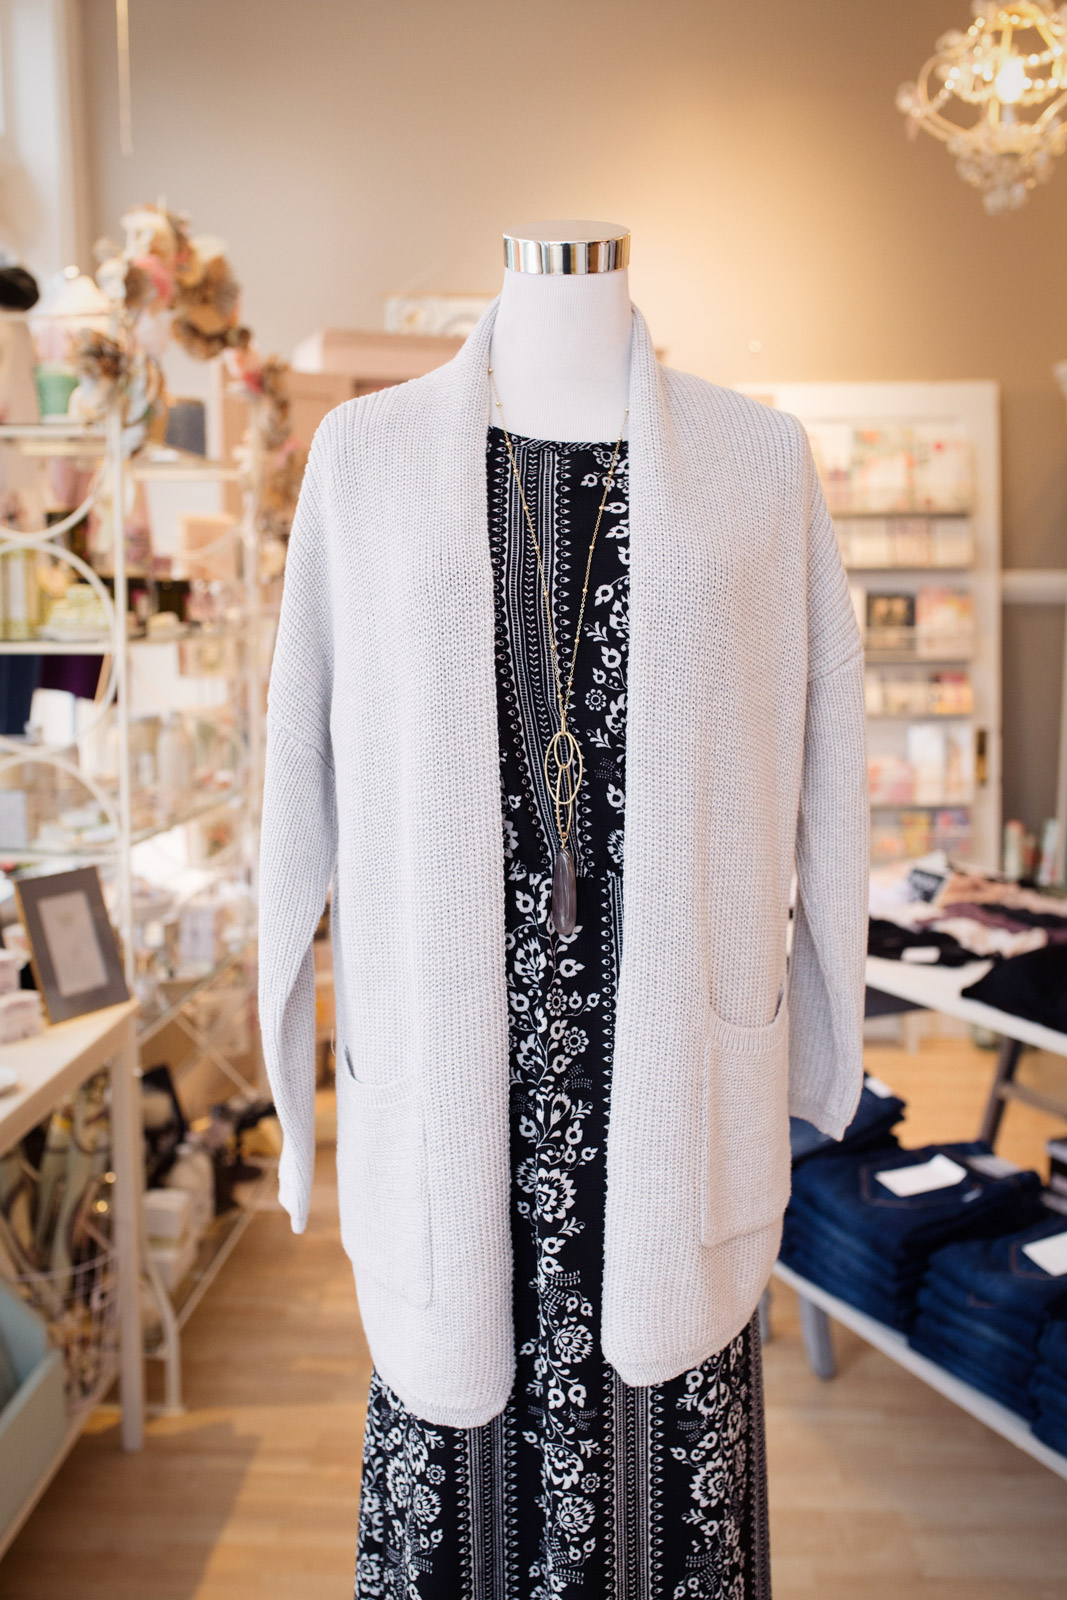 Meadow boutique seattle retail clothing store Yuliya Rae photography branding services-20.jpg